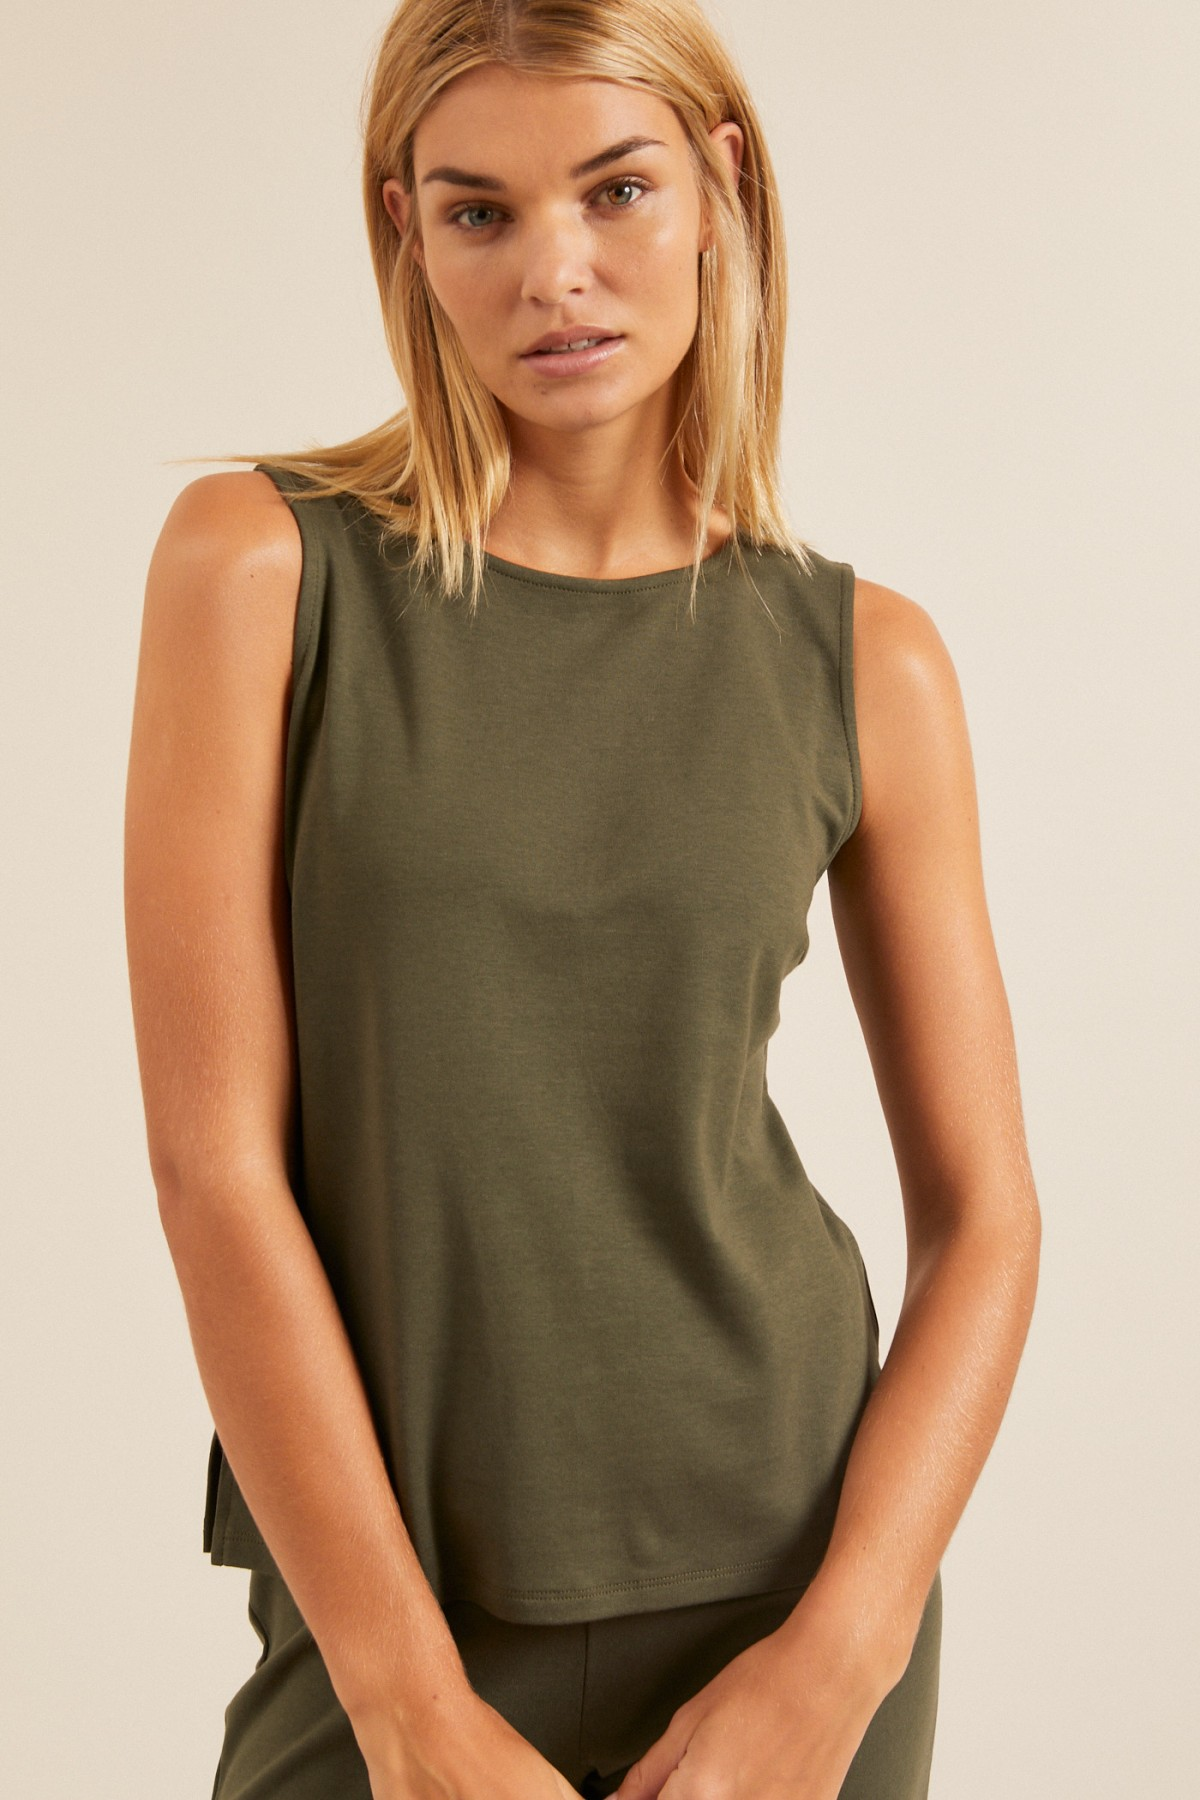 TOP made of TENCEL™ Lyocell with organic cotton